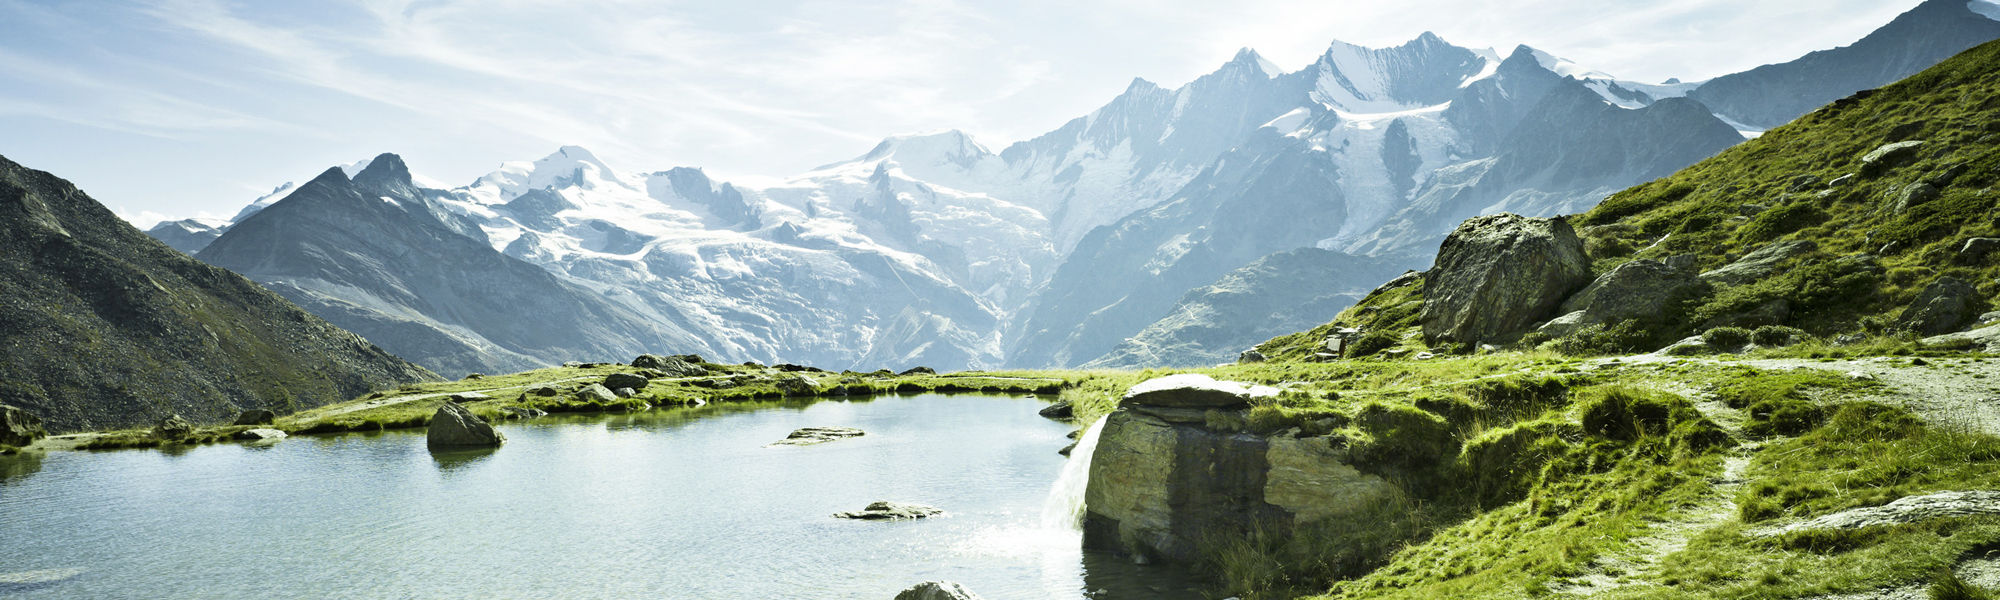 Outdoor Wellness in der Freien Ferienrepublik Saas-Fee